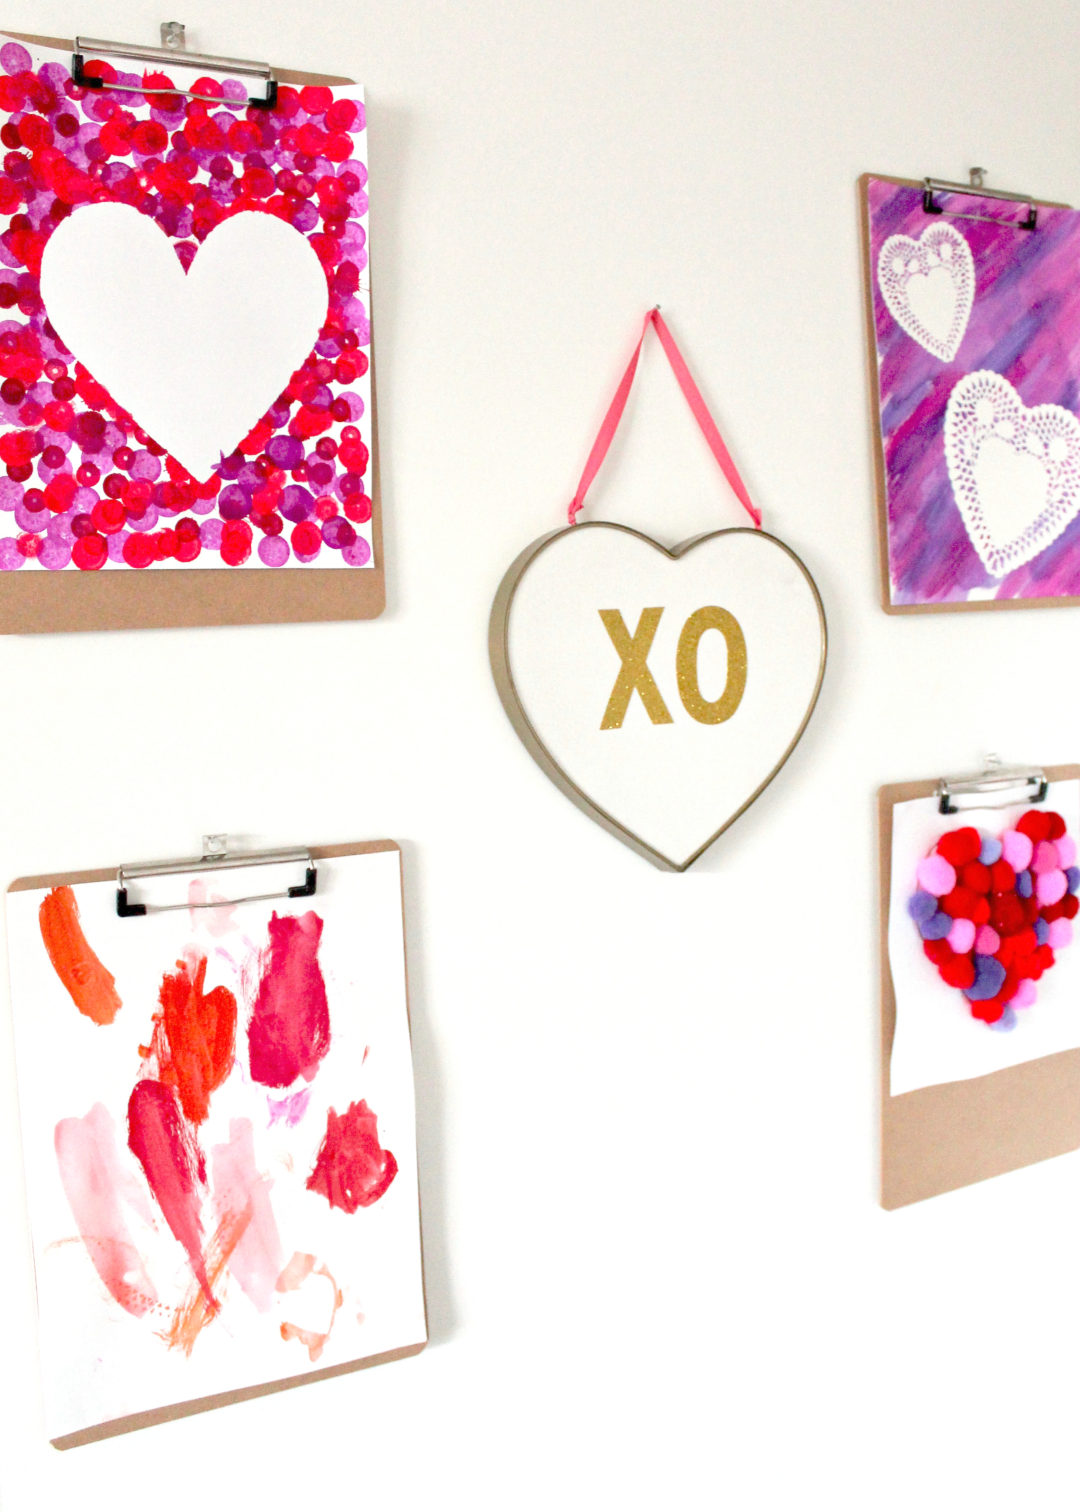 DIY Heart Crafts | Valentines Day Activities for Kids | Valentines Day Crafts | Mix Media Art for Kids | Children's Arts and Crafts | Toddler Art Activity